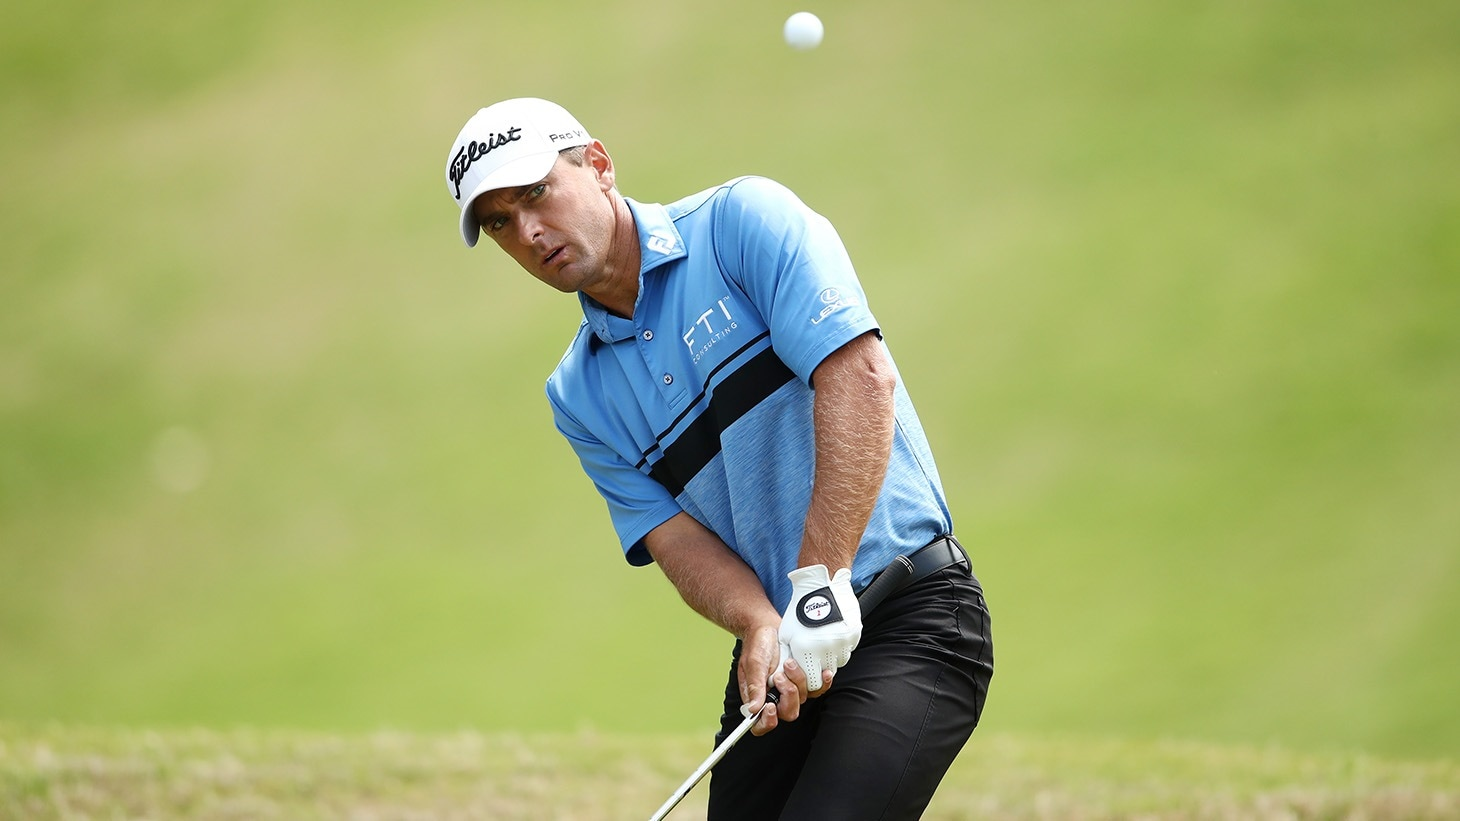 Charles Howell III hits a chip shot with his Vokey SM7 lob wedge at the 2019 Masters